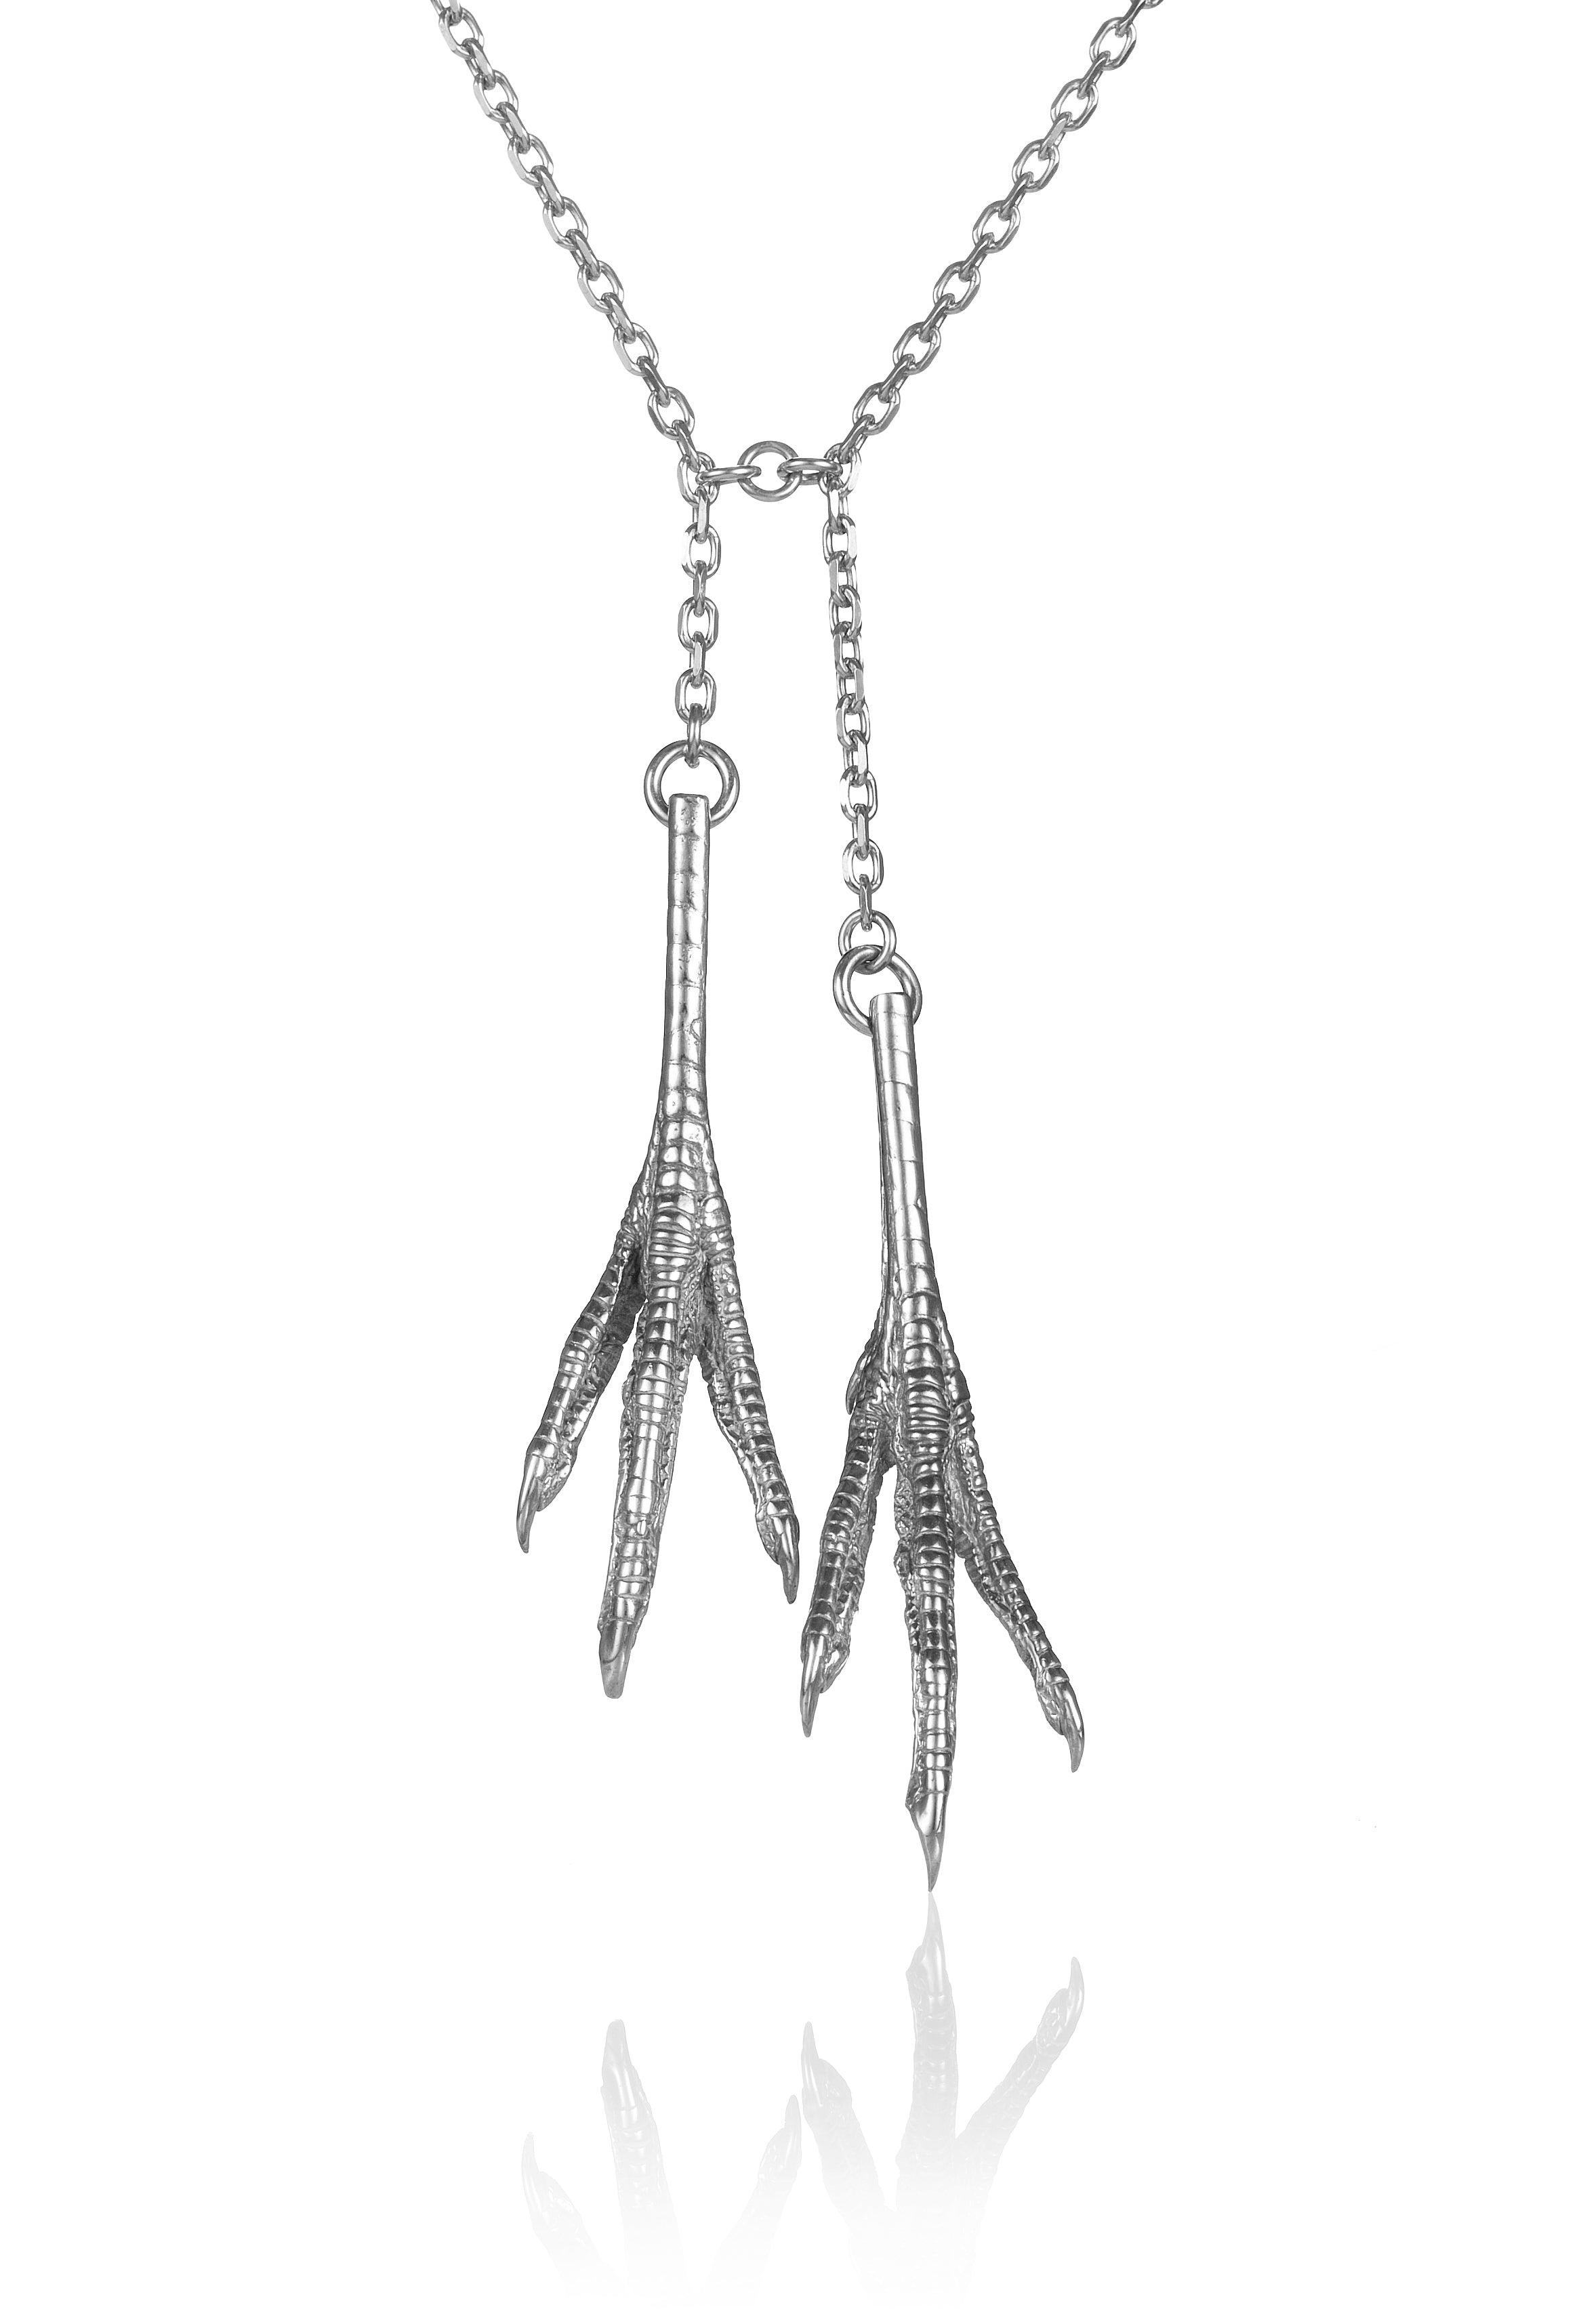 Chicken Feet Necklace Double silver